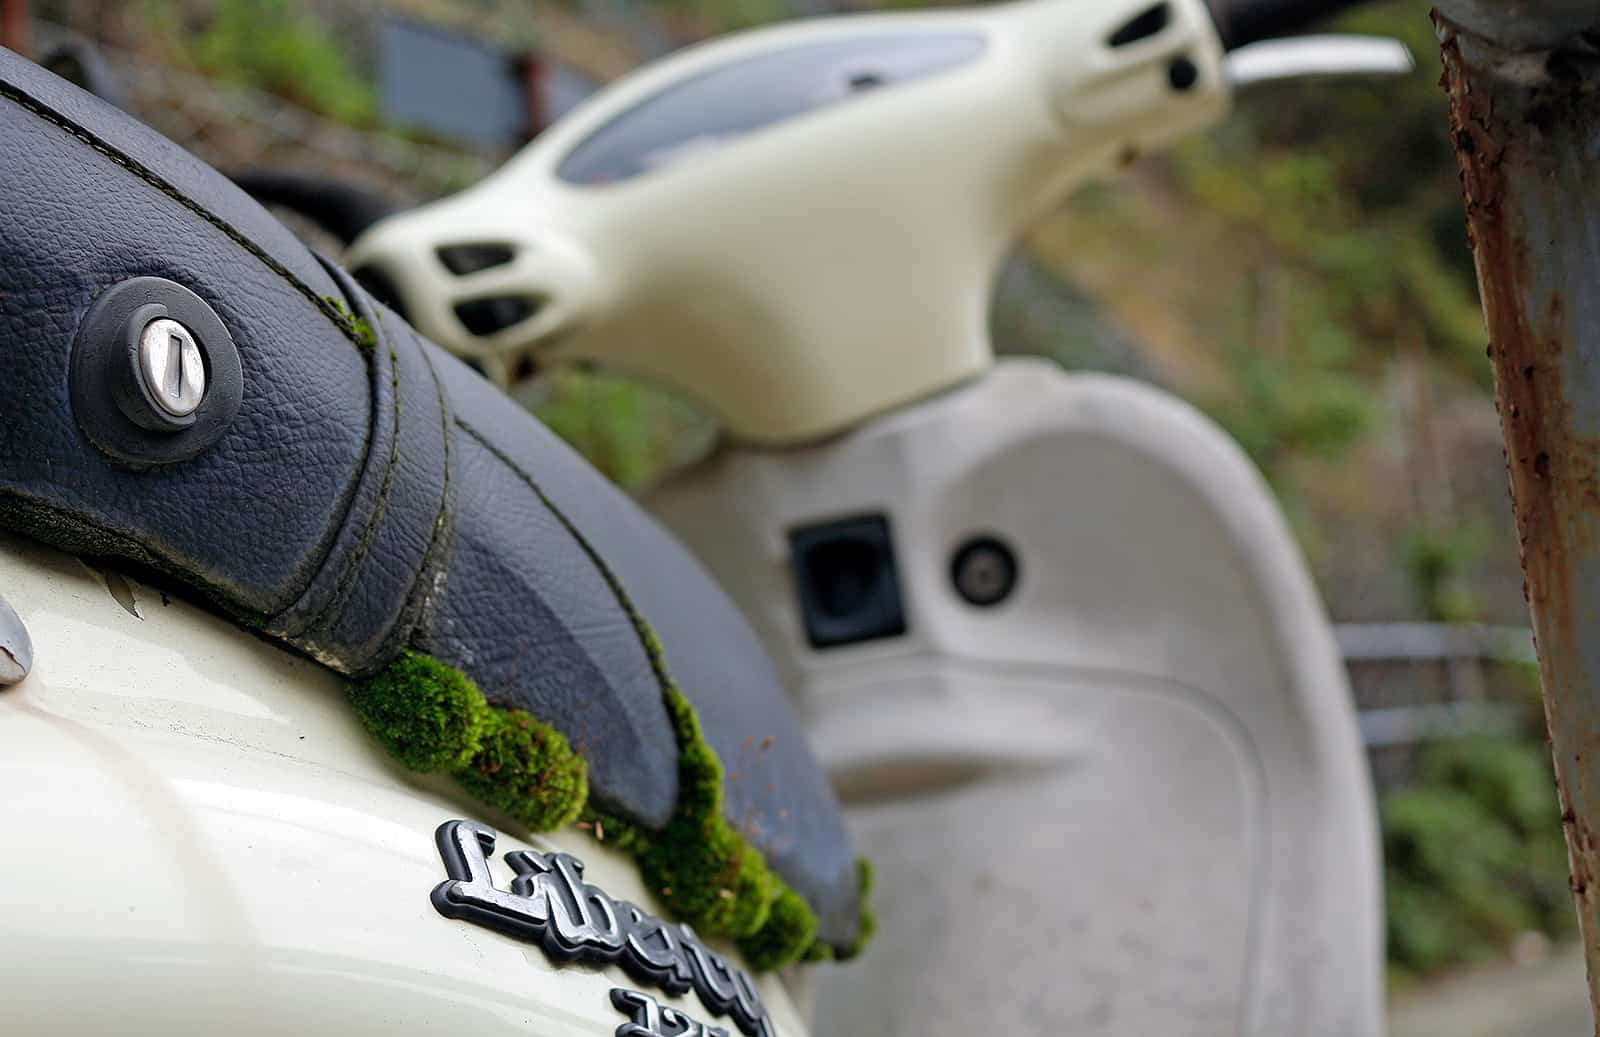 This Vespa is either very eco or someone is smuggling something under the seat and it desperately wants to get out.